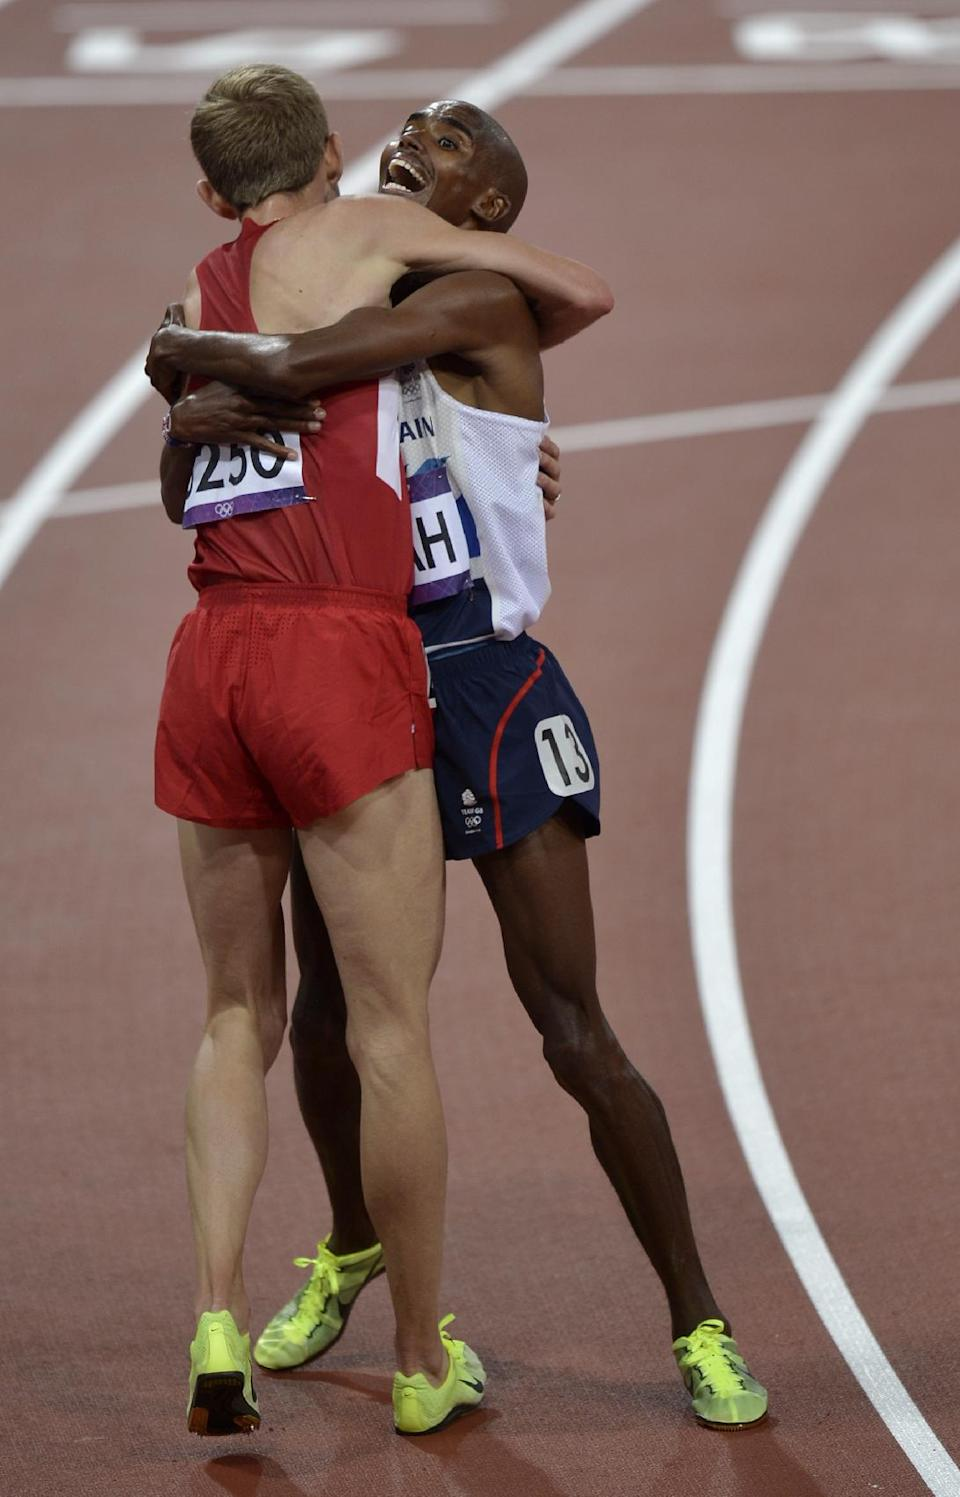 Britain's Mo Farah, right, celebrates winning gold with silver medallist Galen Rupp of the United States following the men's 10,000-meter final during the athletics in the Olympic Stadium at the 2012 Summer Olympics, London, Saturday, Aug. 4, 2012. (AP Photo/Martin Meissner)